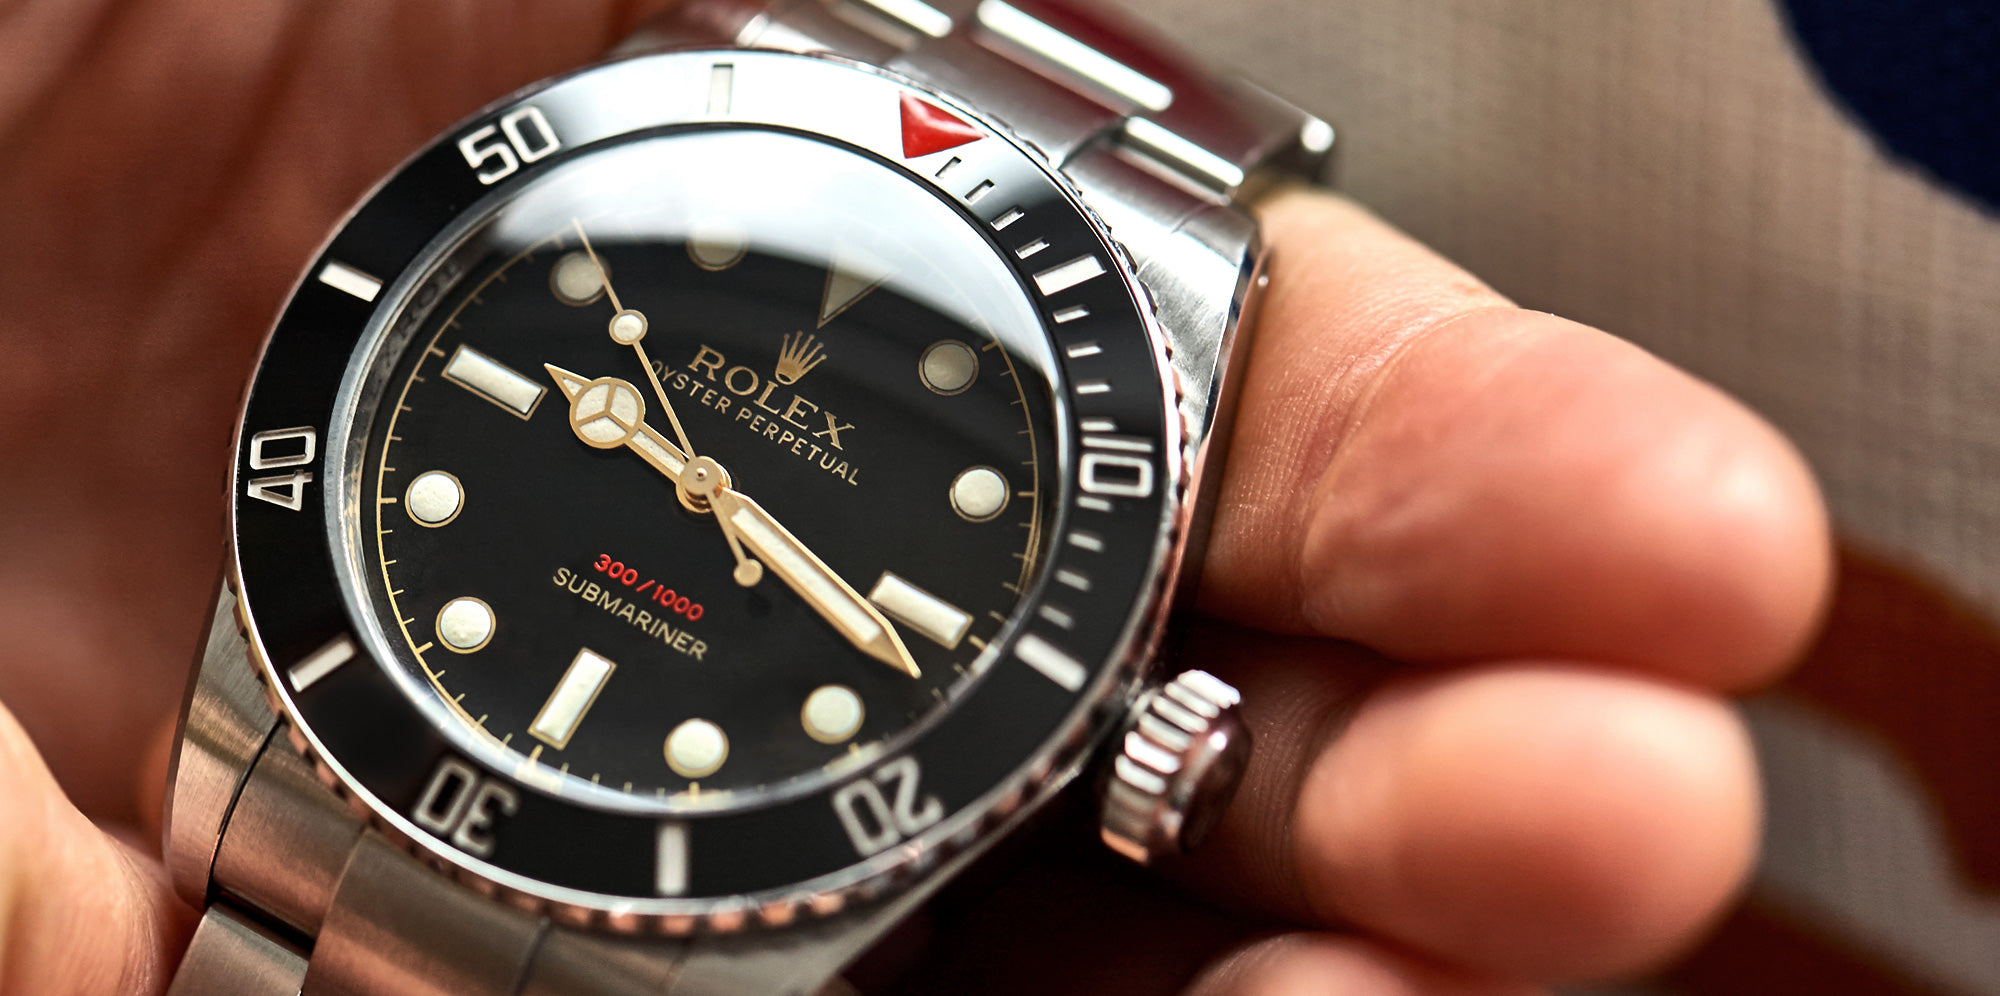 The Tempus Machina Custom Rolex: An Education